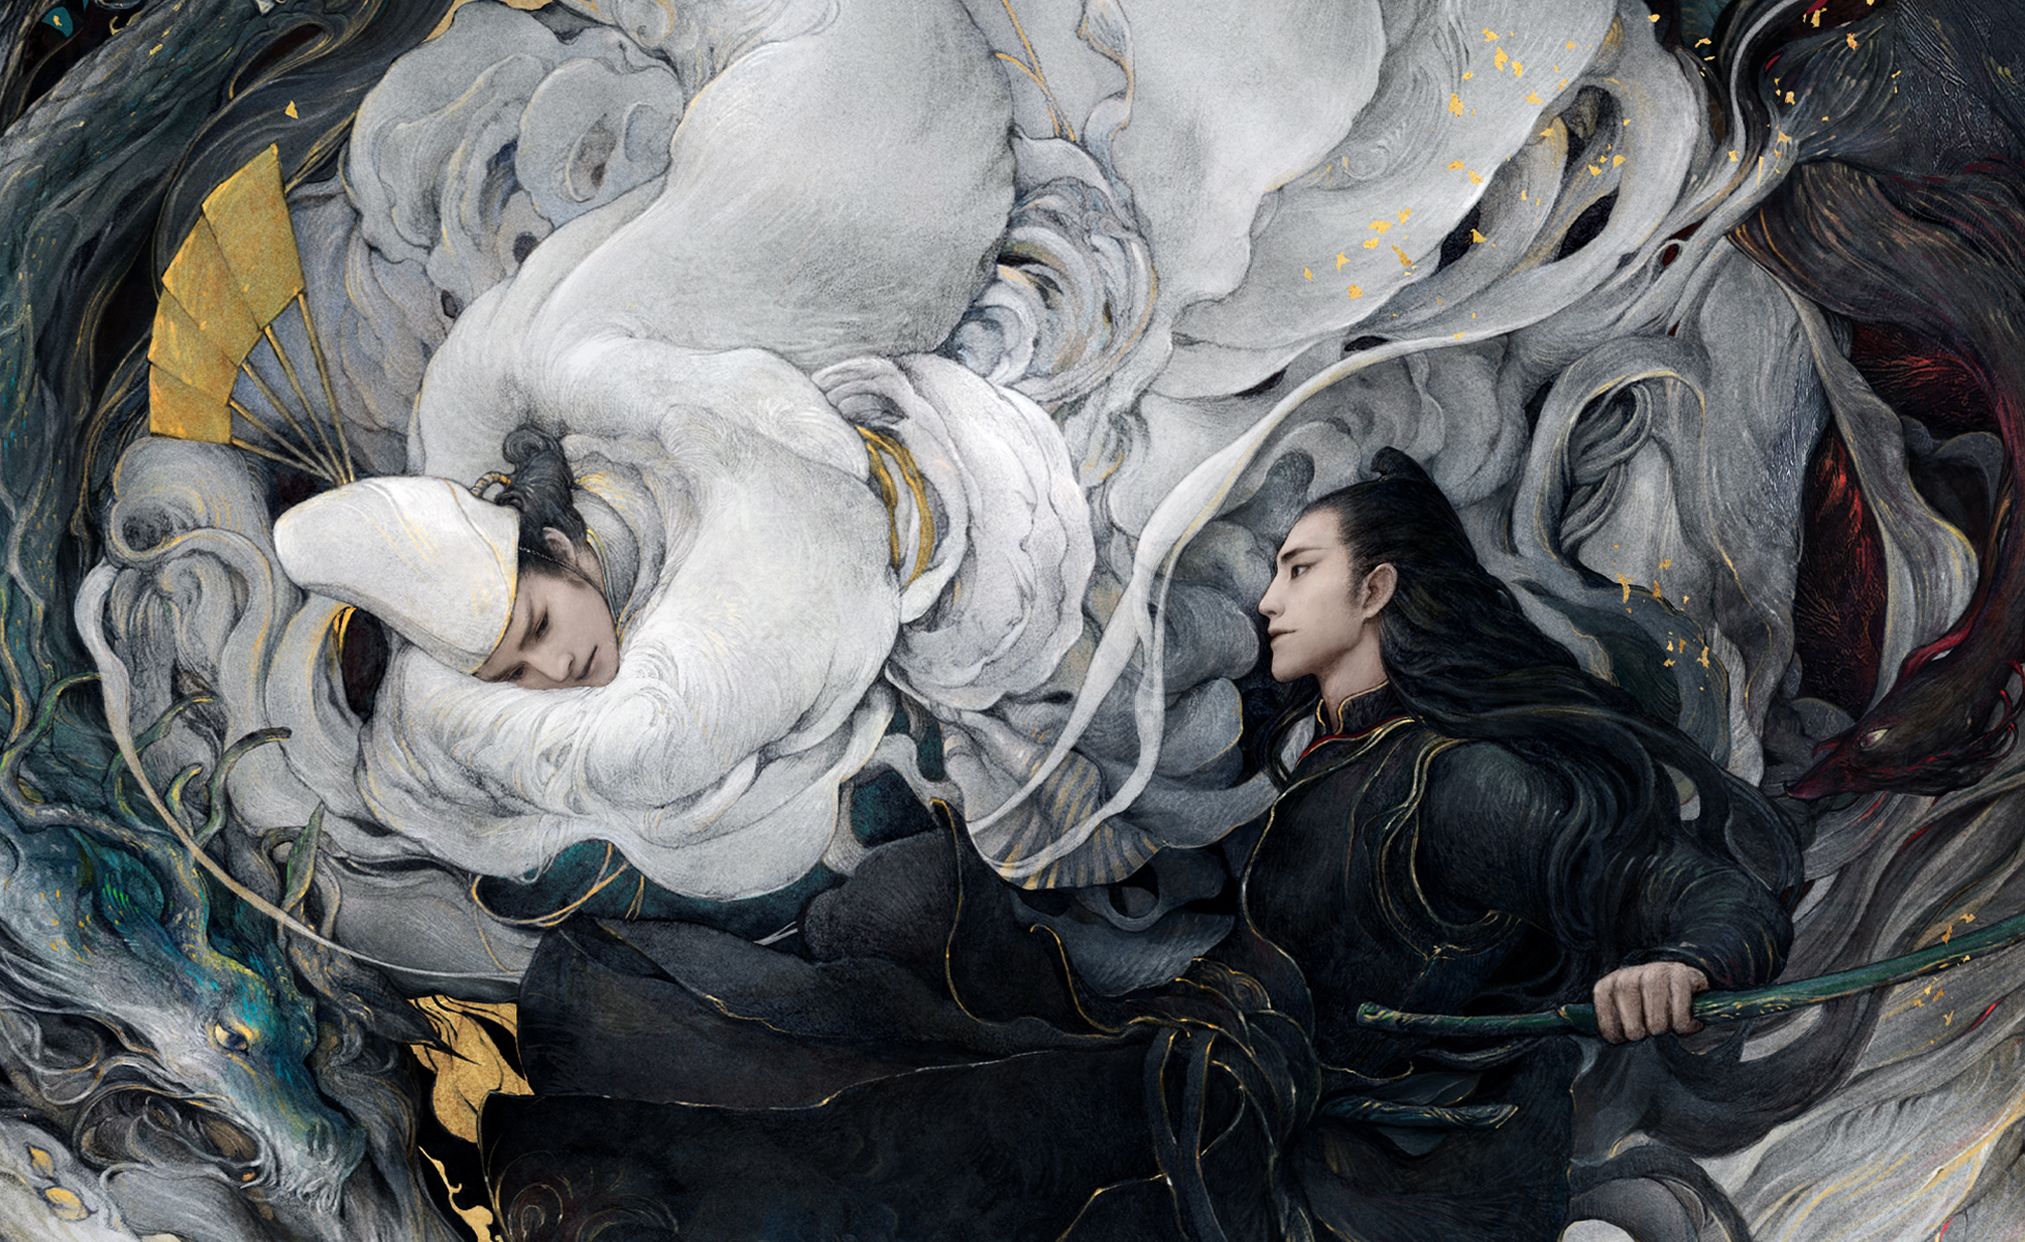 The Yin-Yang Master: Dream Of Eternity Arrives on Netflix